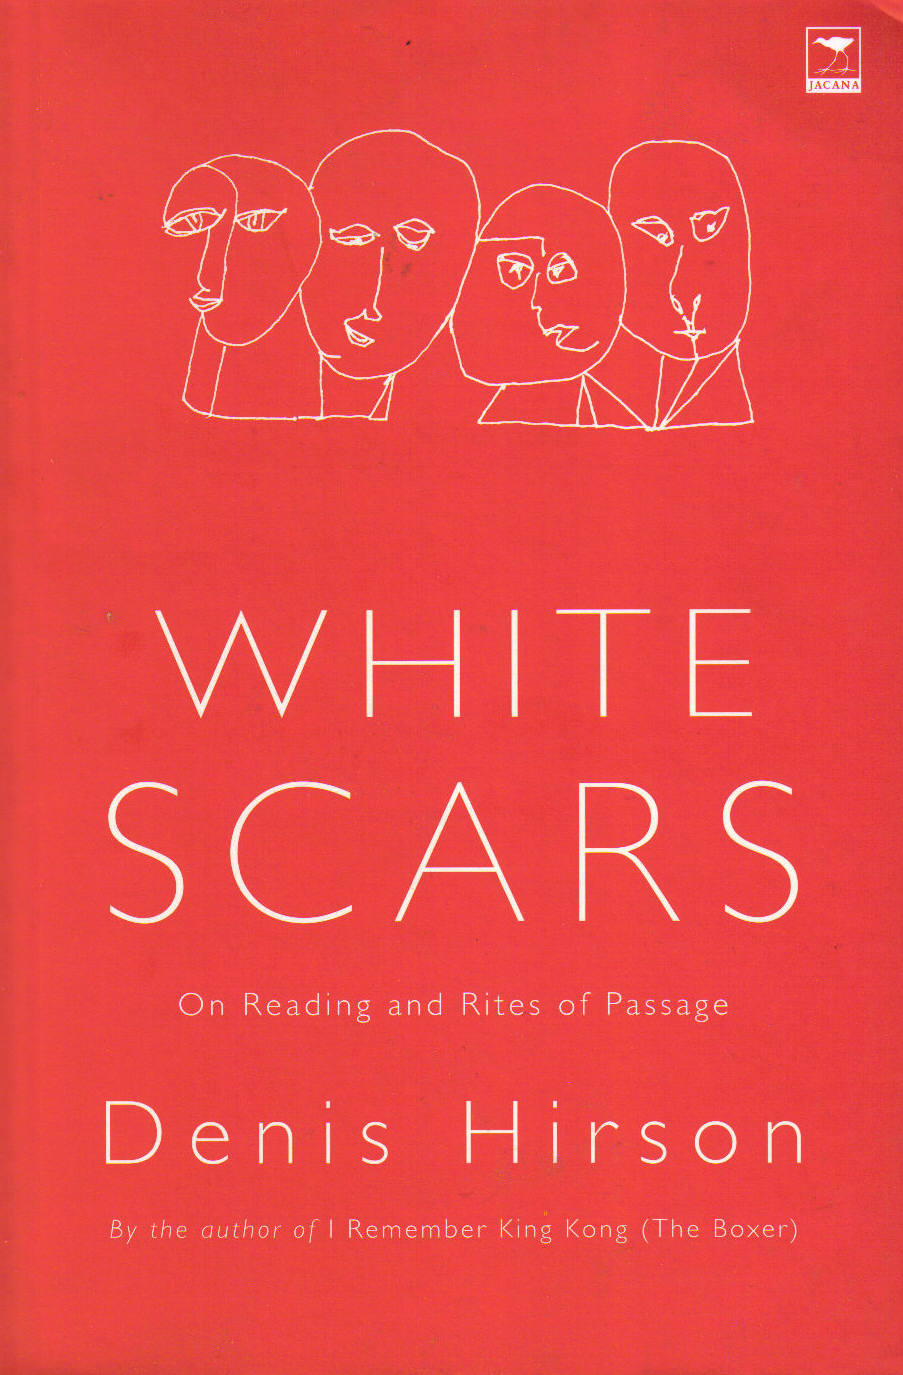 WHITE SCARS Non-fiction essays, 196 pages Jacana Media (South Africa) - August 2006 A lyrical meditation on reading and its significance in our lives, focusing on four works that changed the author – books by Perec, Raymond Carver, and poet Breyten Breytenbach, as well as a book on the Sharpeville shooting.